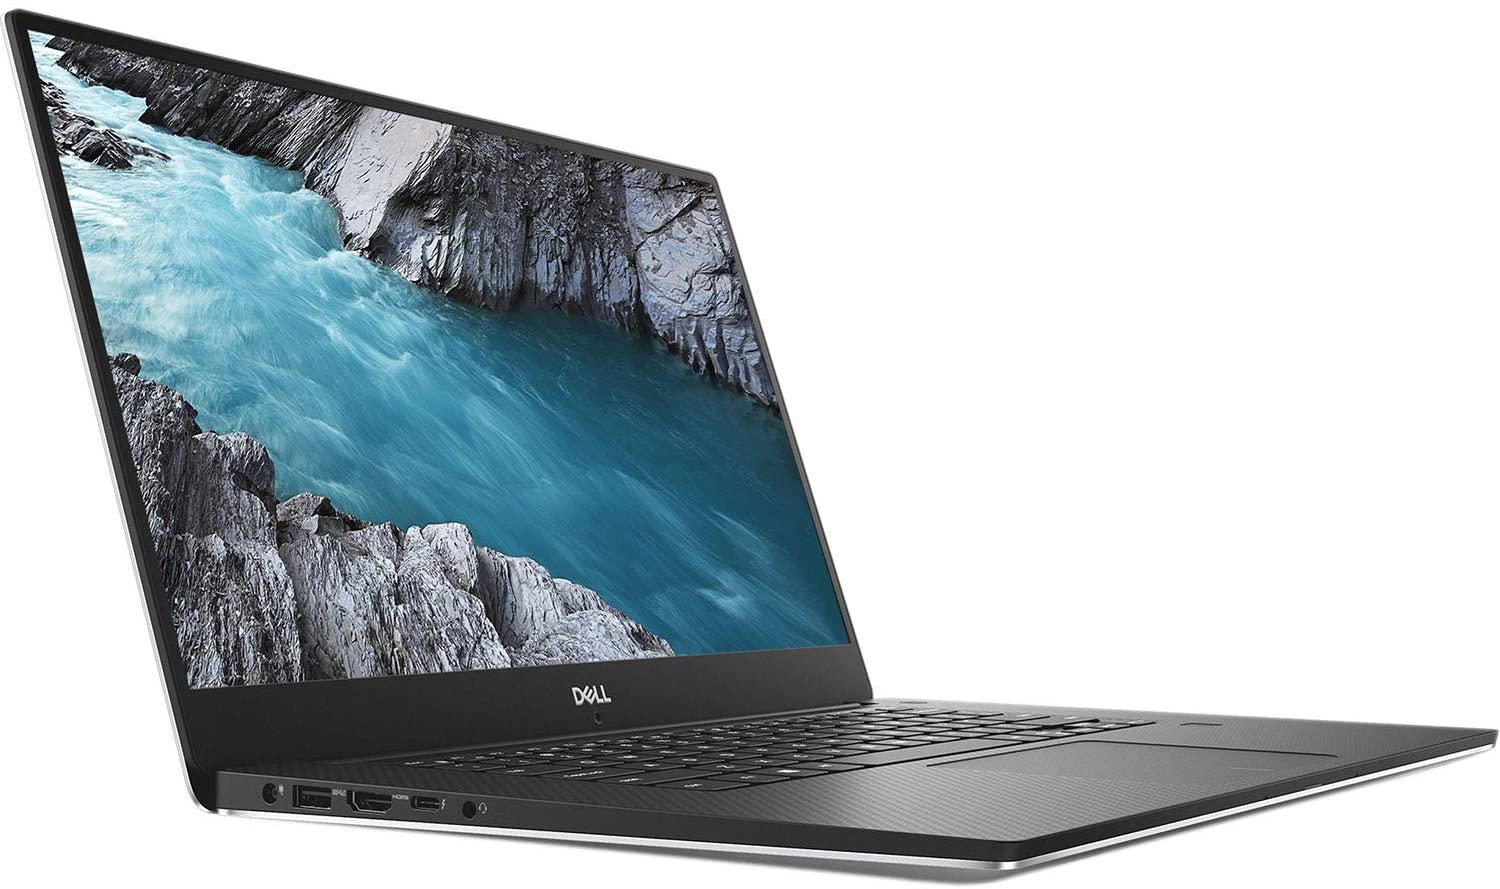 Dell XPS 15 9570 15.6in Touchscreen InfinityEdge 4K Ultra HD Laptop i7-8750H 32GB Memory 1TB SSD 4GB NVIDIA GeForce GTX 1050 Ti Windows 10 Home Silver (Renewed)